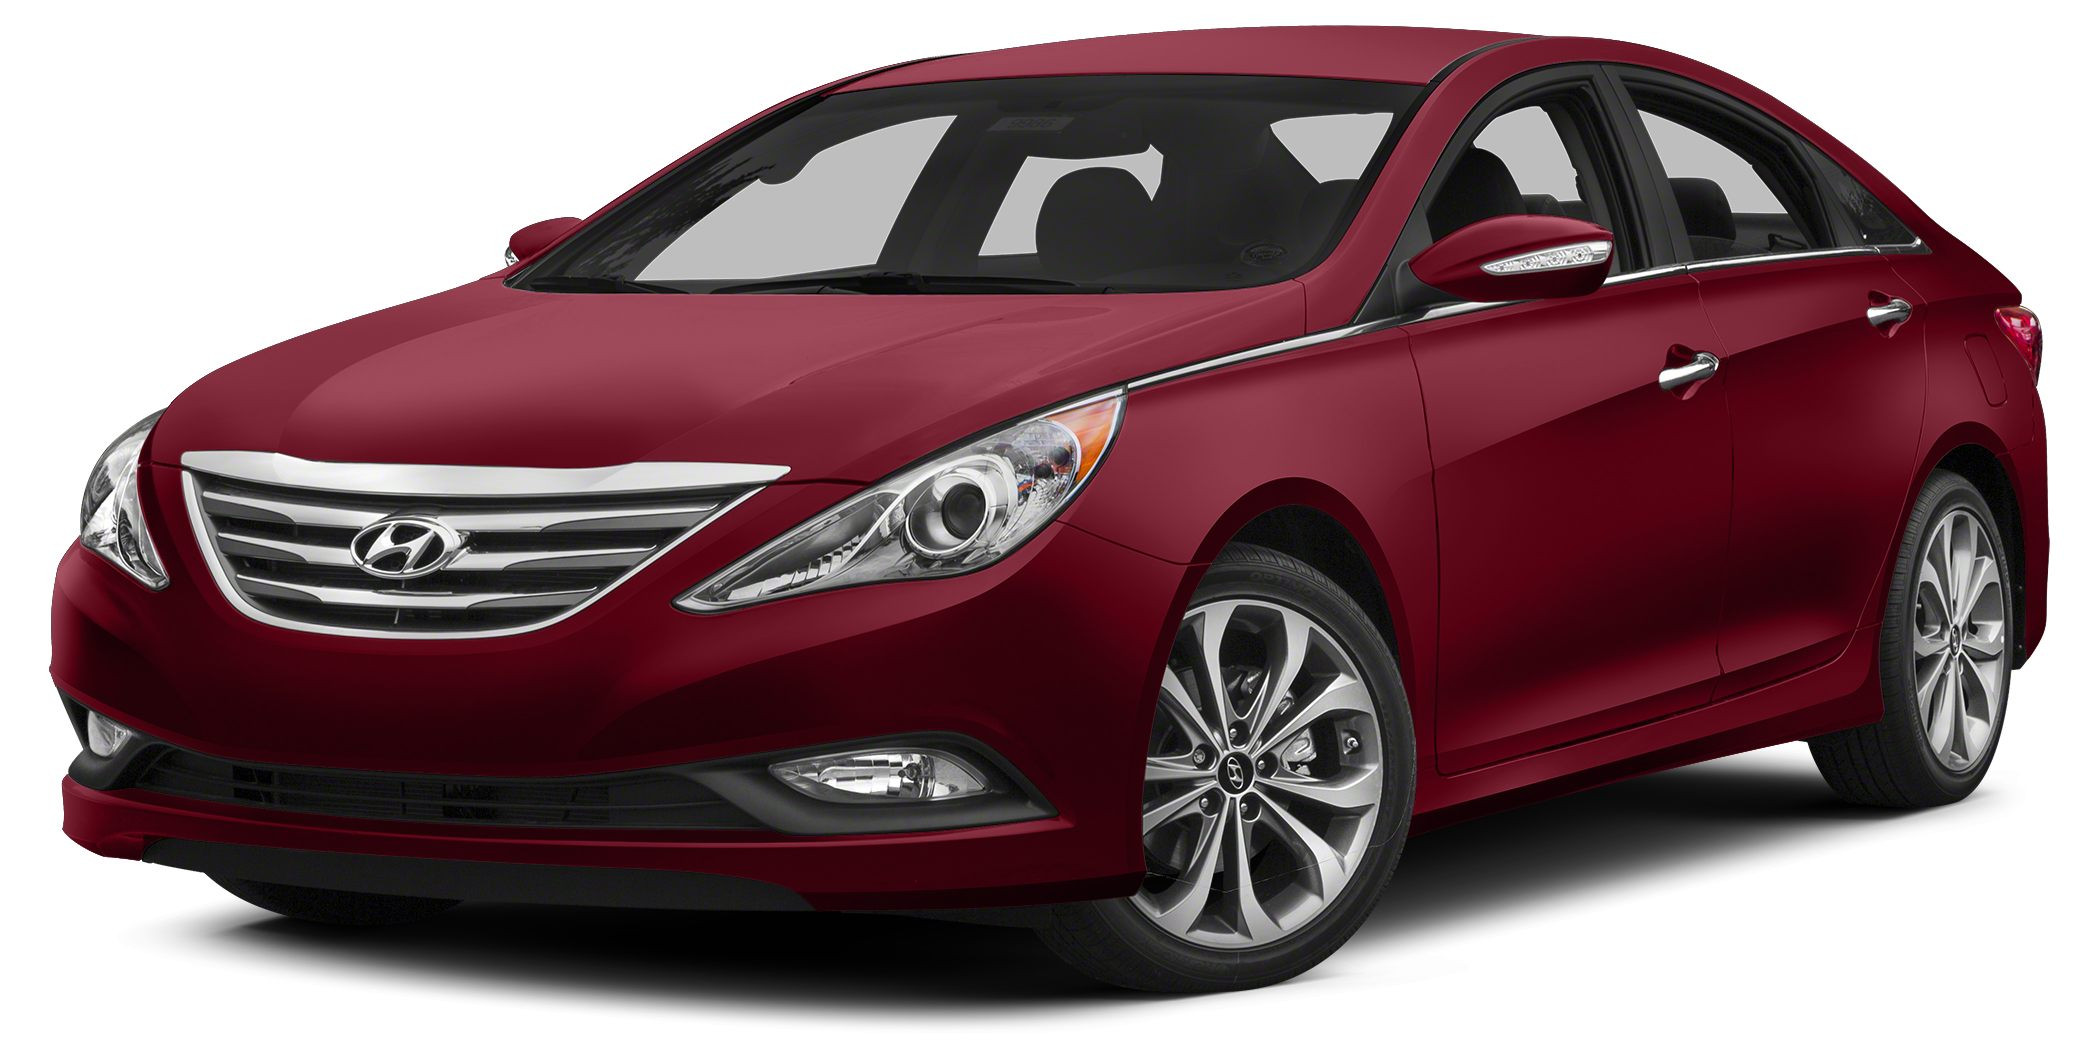 2014 Hyundai Sonata GLS Digital odometer and traction control make this 2014 Hyundai Sonata GLS one